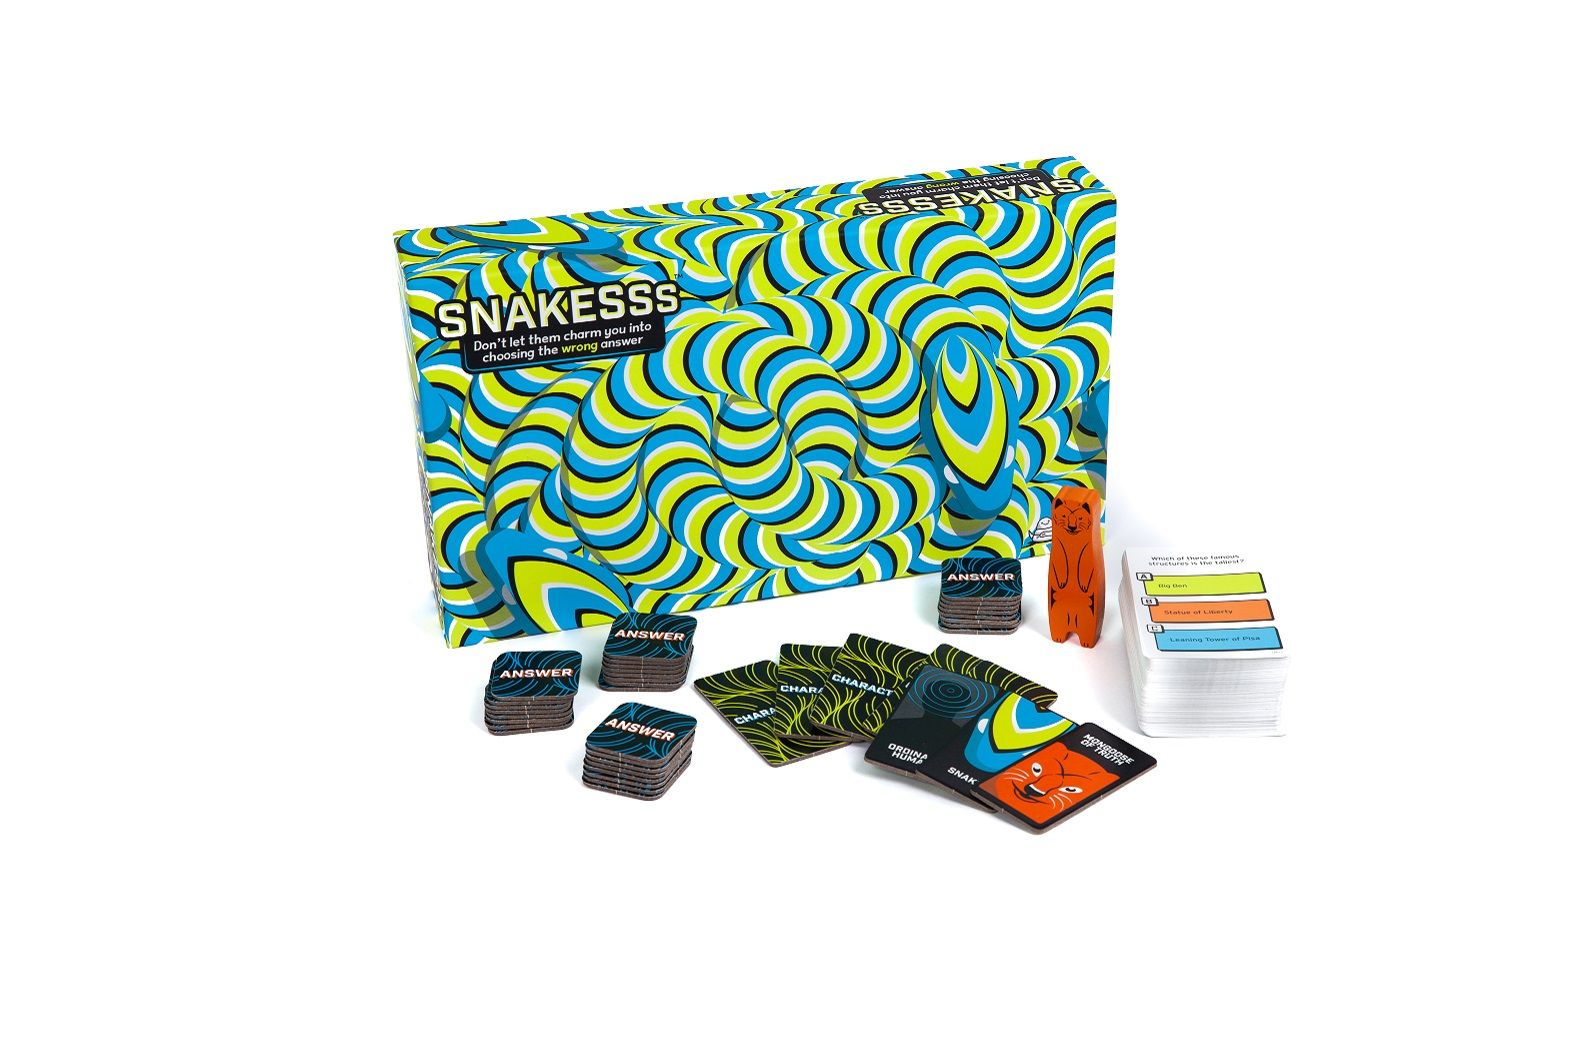 A patterned blue and green game box with cards and game pieces set out in front of it.